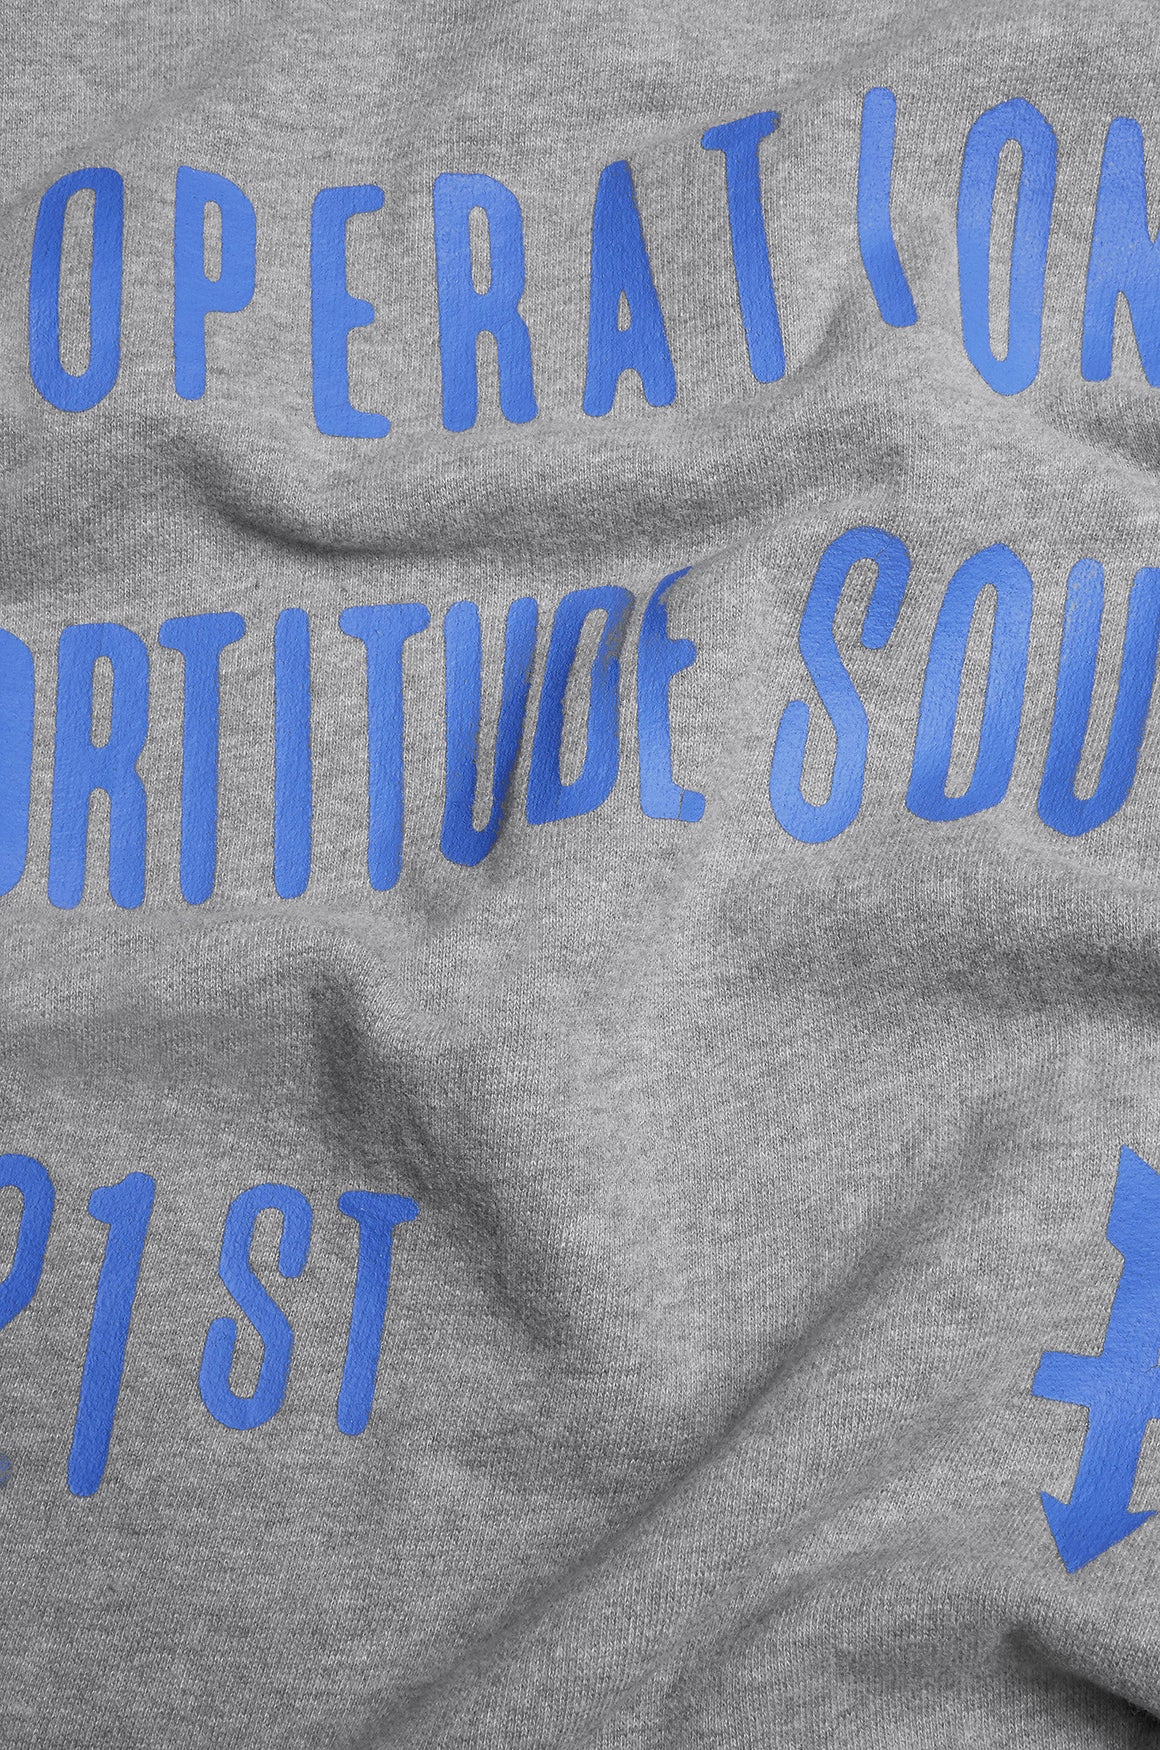 Men's Fortitude South Sweatshirt | Grey Marl